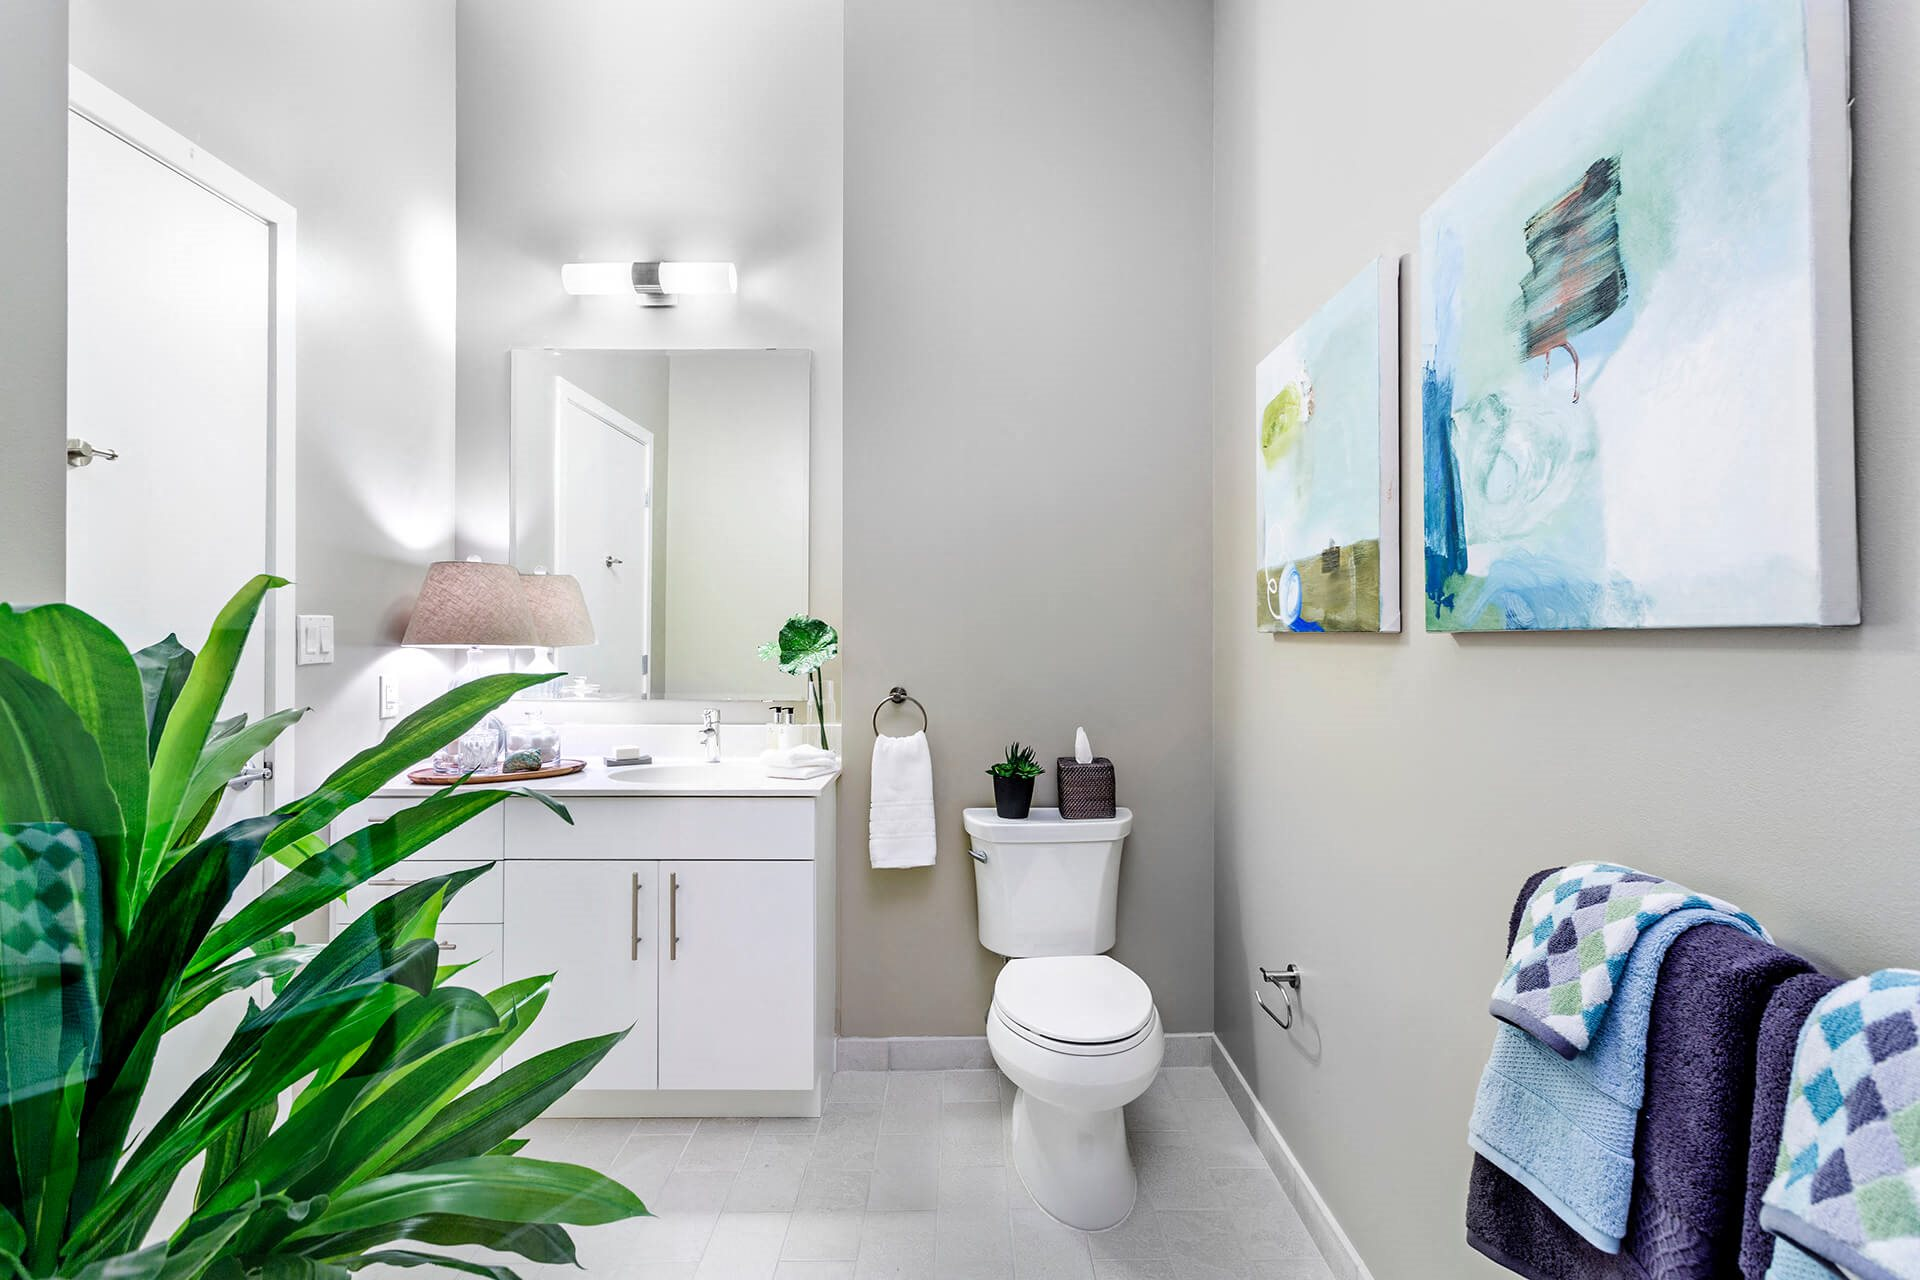 Spacious Bathrooms at Waterside Place by Windsor, Massachusetts, 02210